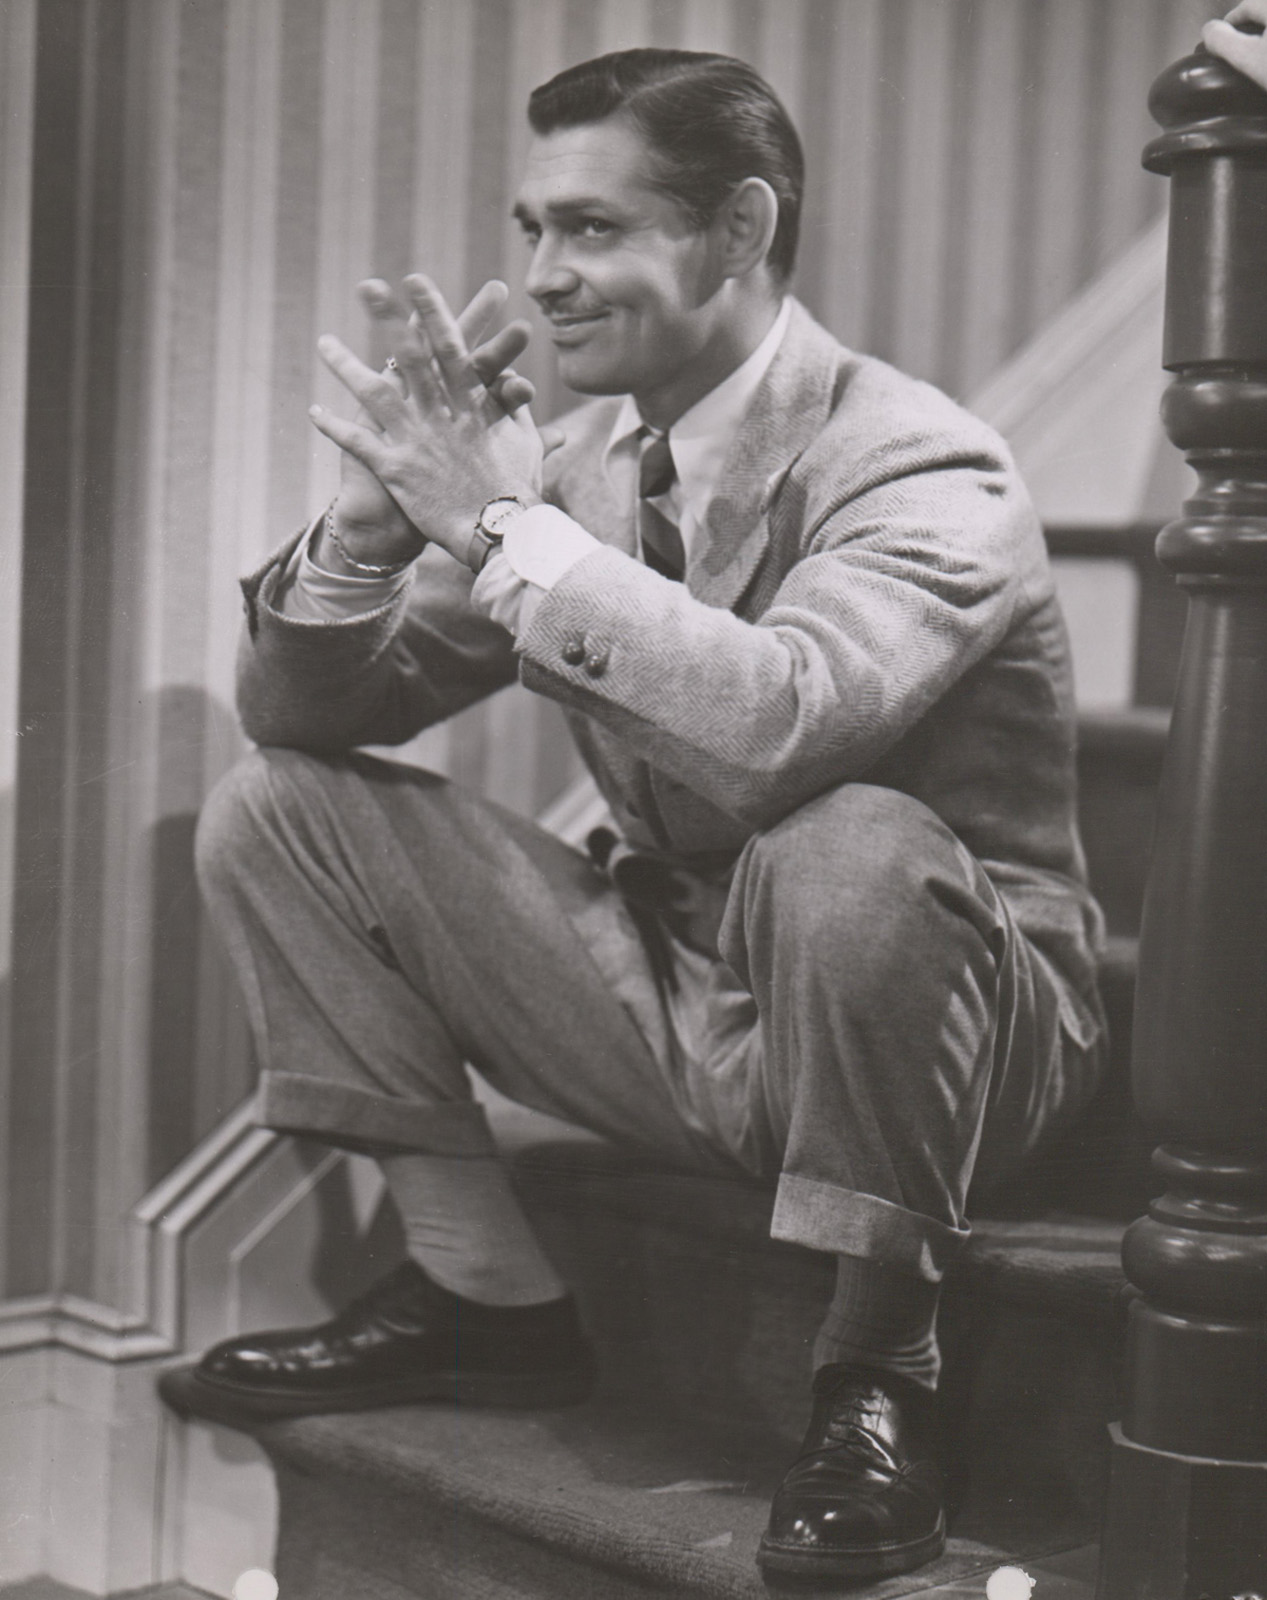 Clark Gable Keybook Photo in 'Test Pilot' (1937)